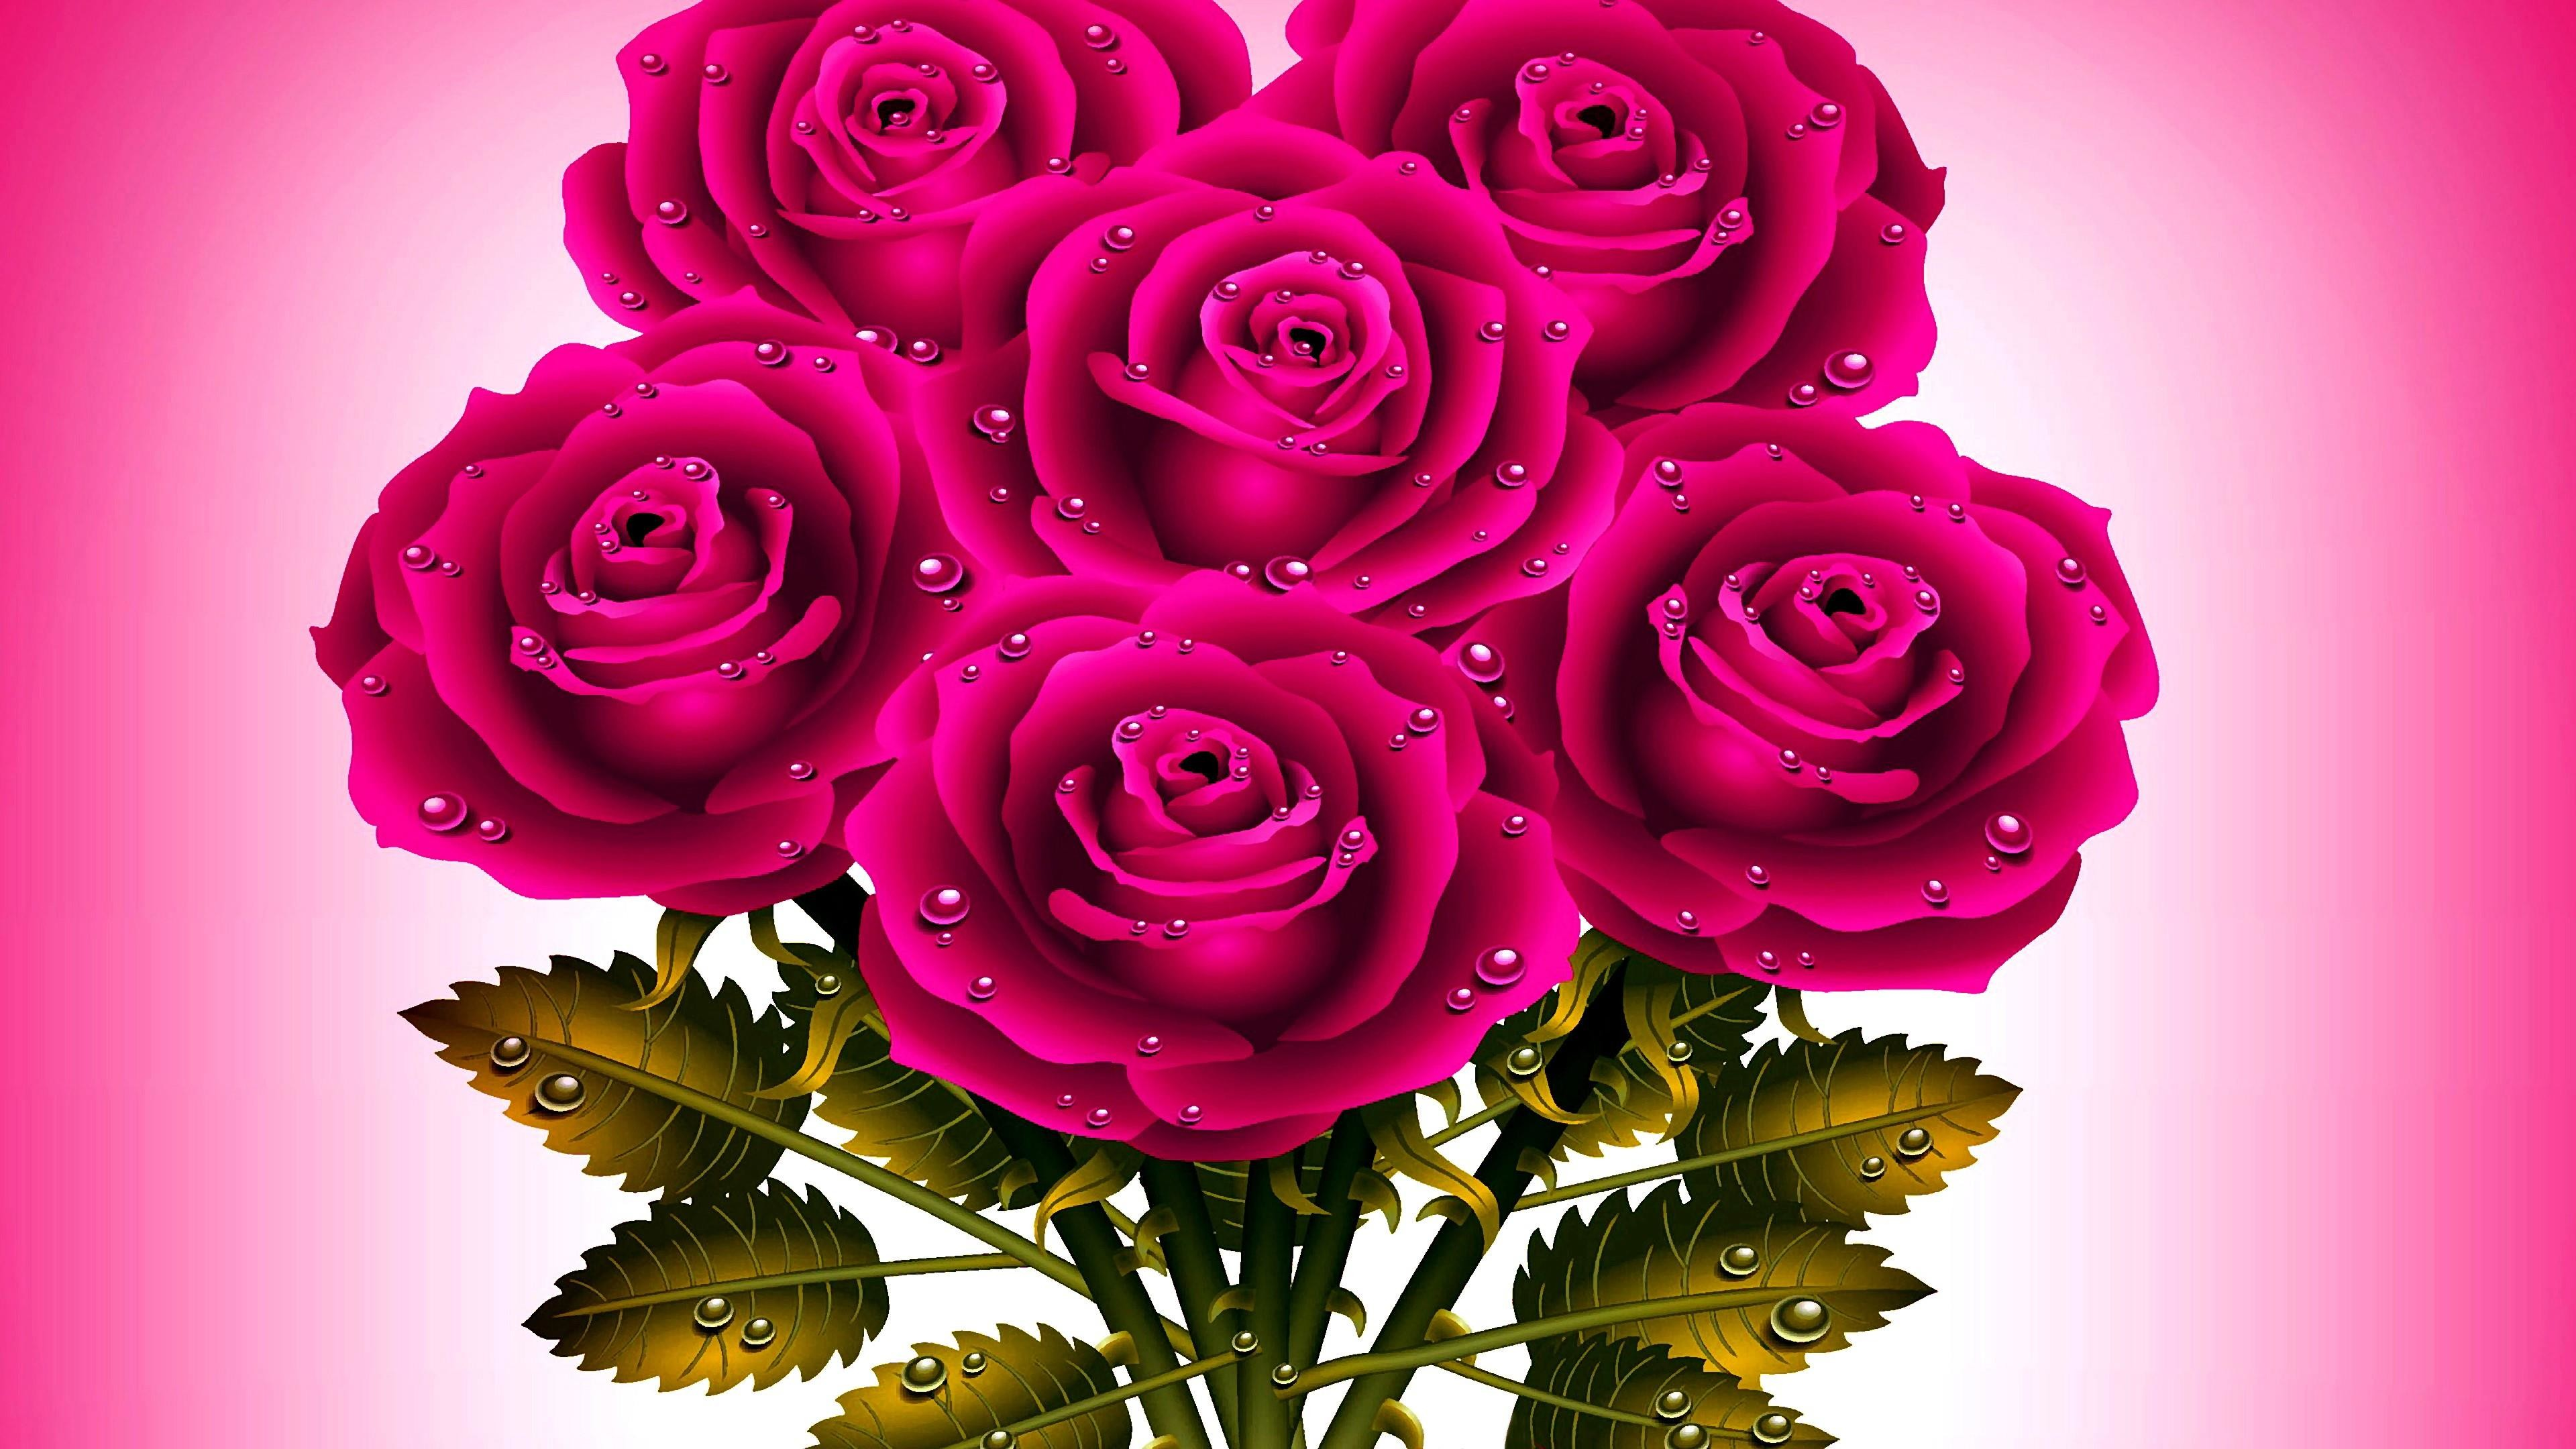 Res: 3840x2160, Pink Roses Wallpaper | Wallpaper Studio 10 | Tens of thousands HD and  UltraHD wallpapers for Android, Windows and Xbox